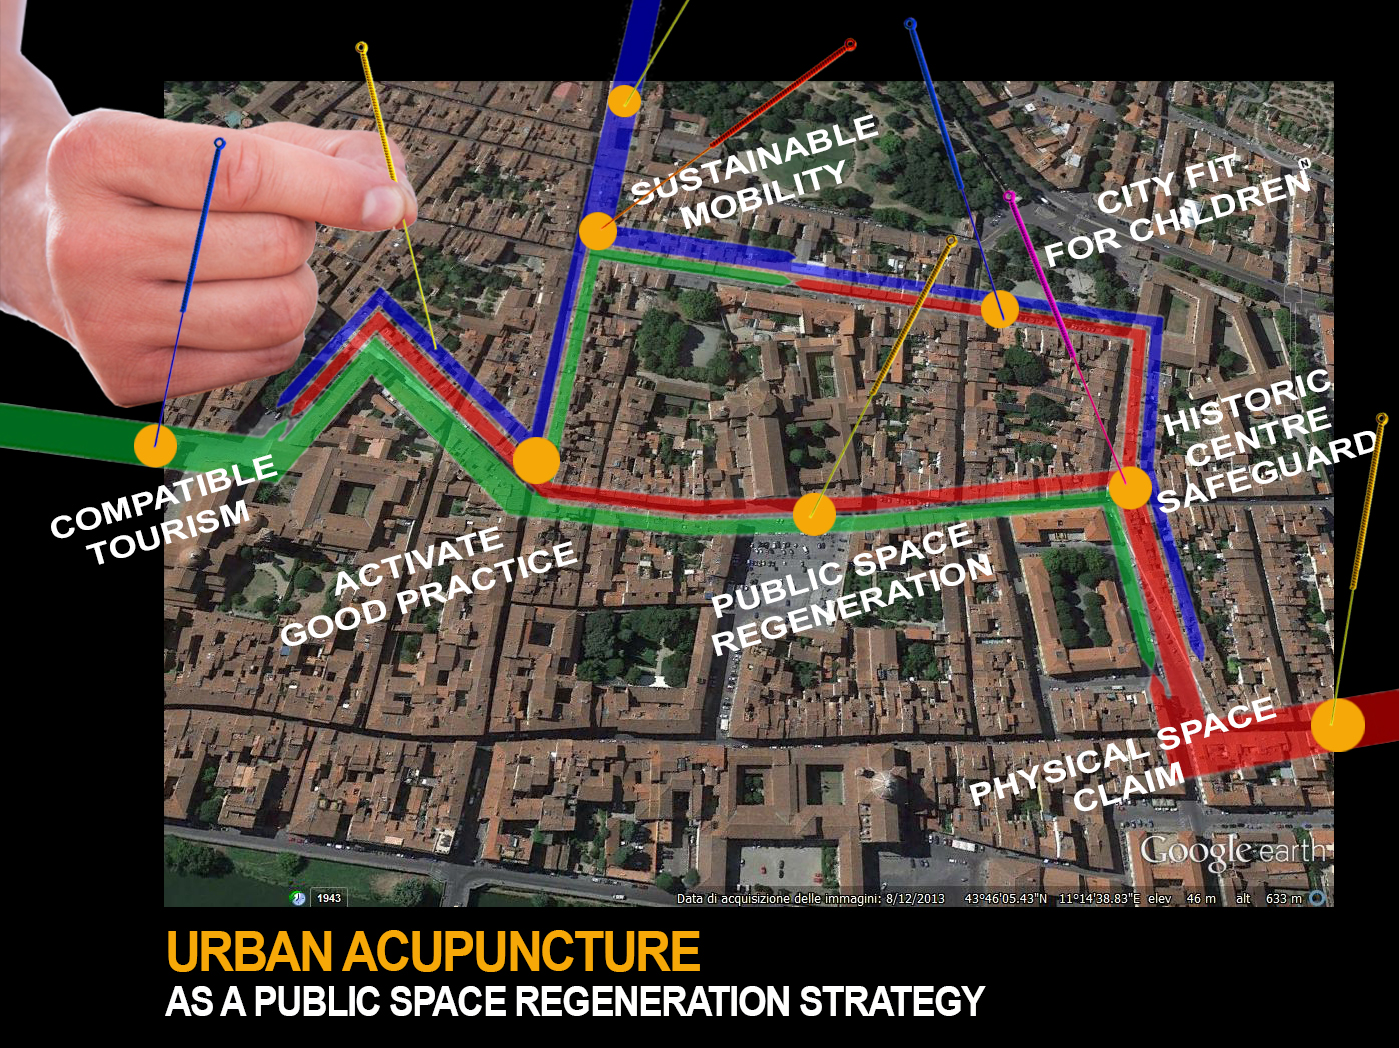 URBAN ACUPUNCTURE IN FLORENCE